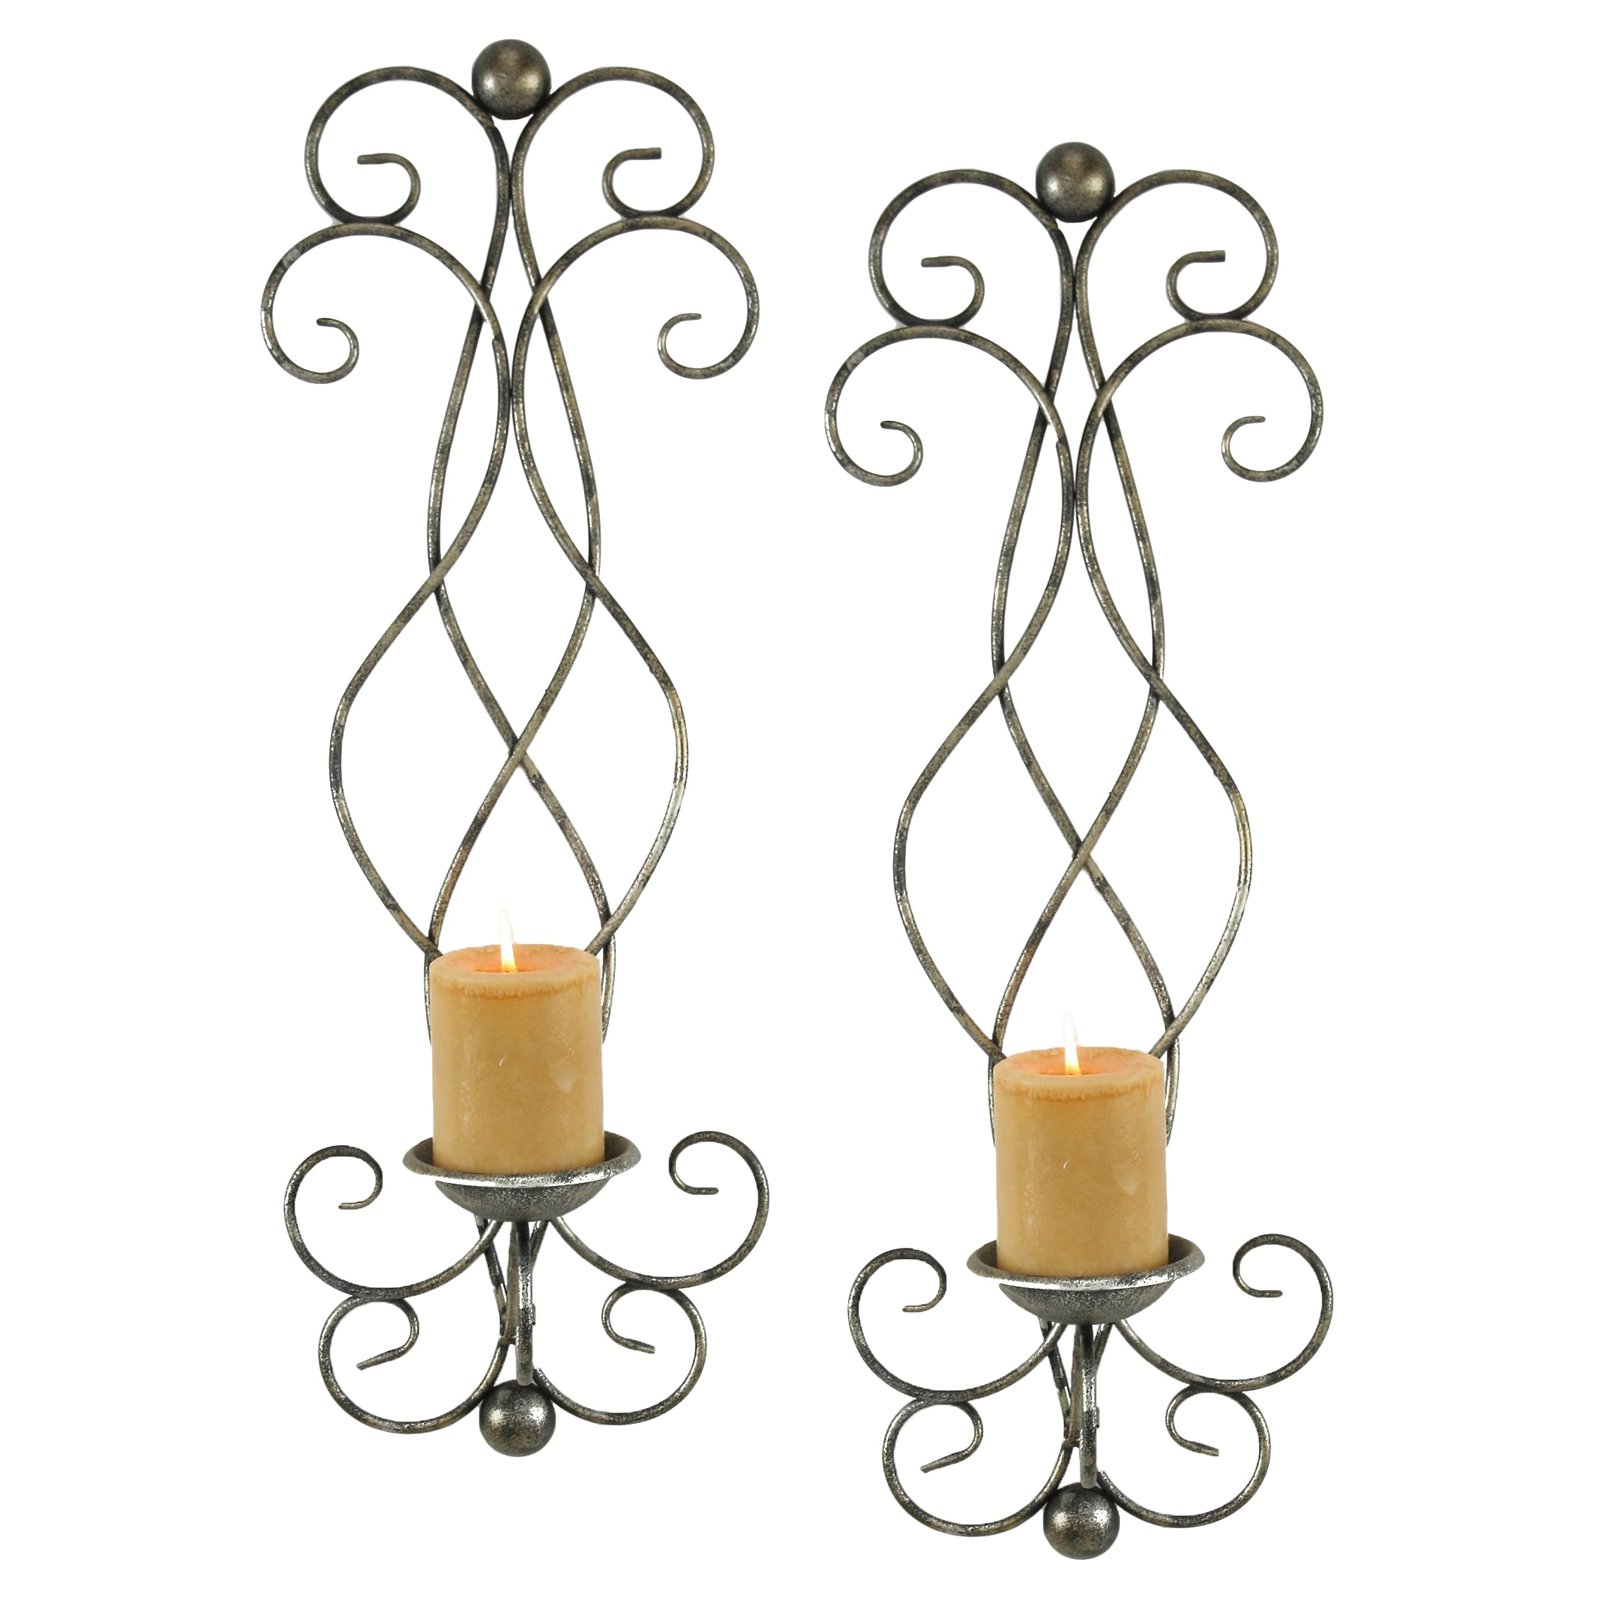 Aspire Home Accents Estelle Candle Wall Sconce Set of 2 by Aspire Home Accents